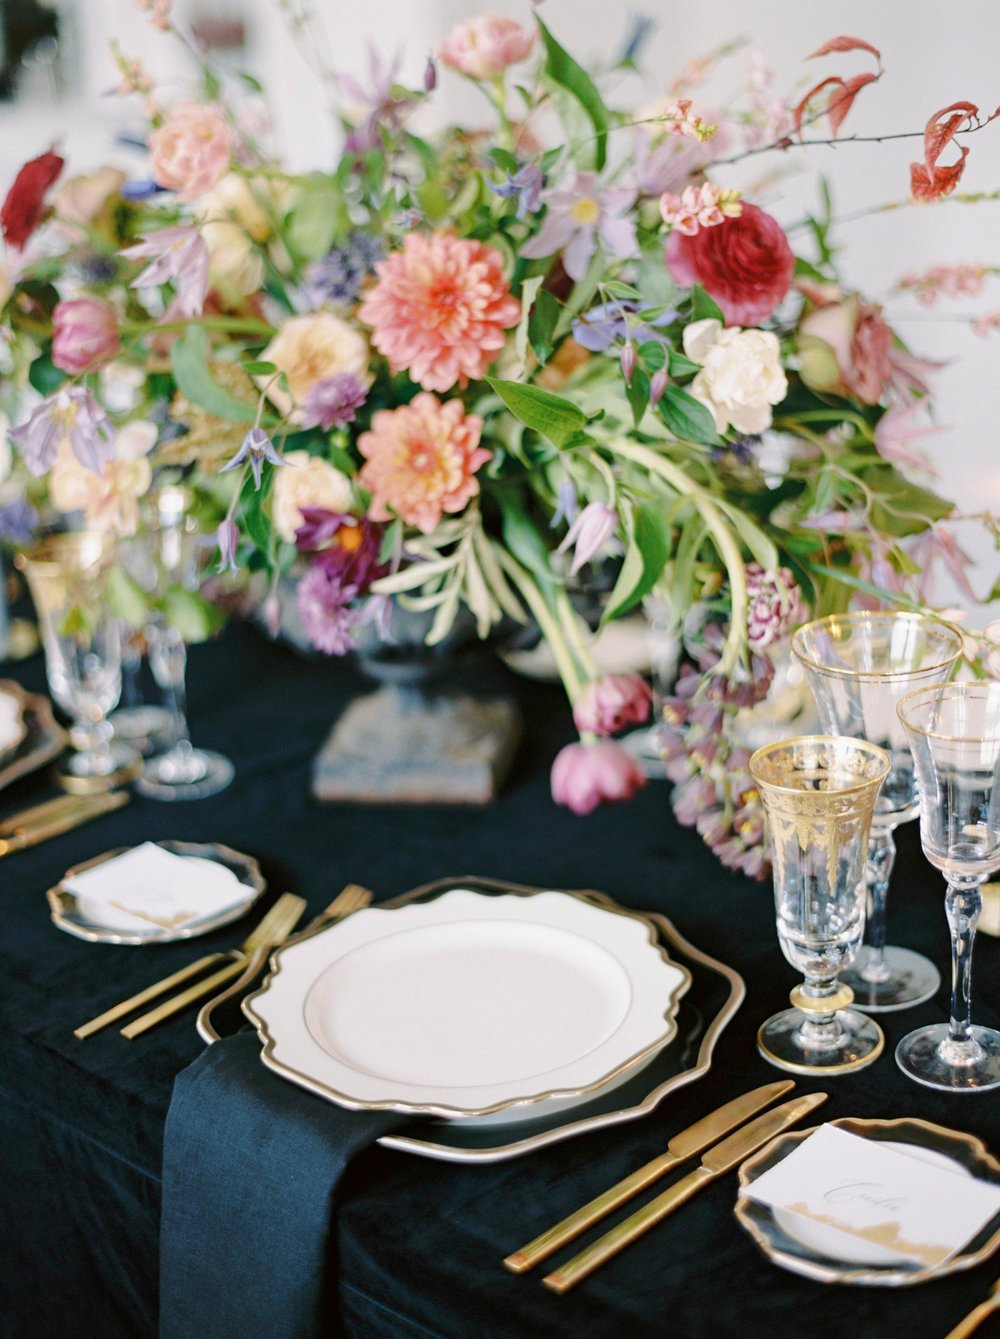 Spetses greece destination wedding photographer | Poseidonion Grand Hotel Wedding | Justine Milton fine art film photography | black and colorful glamorous wedding inspiration